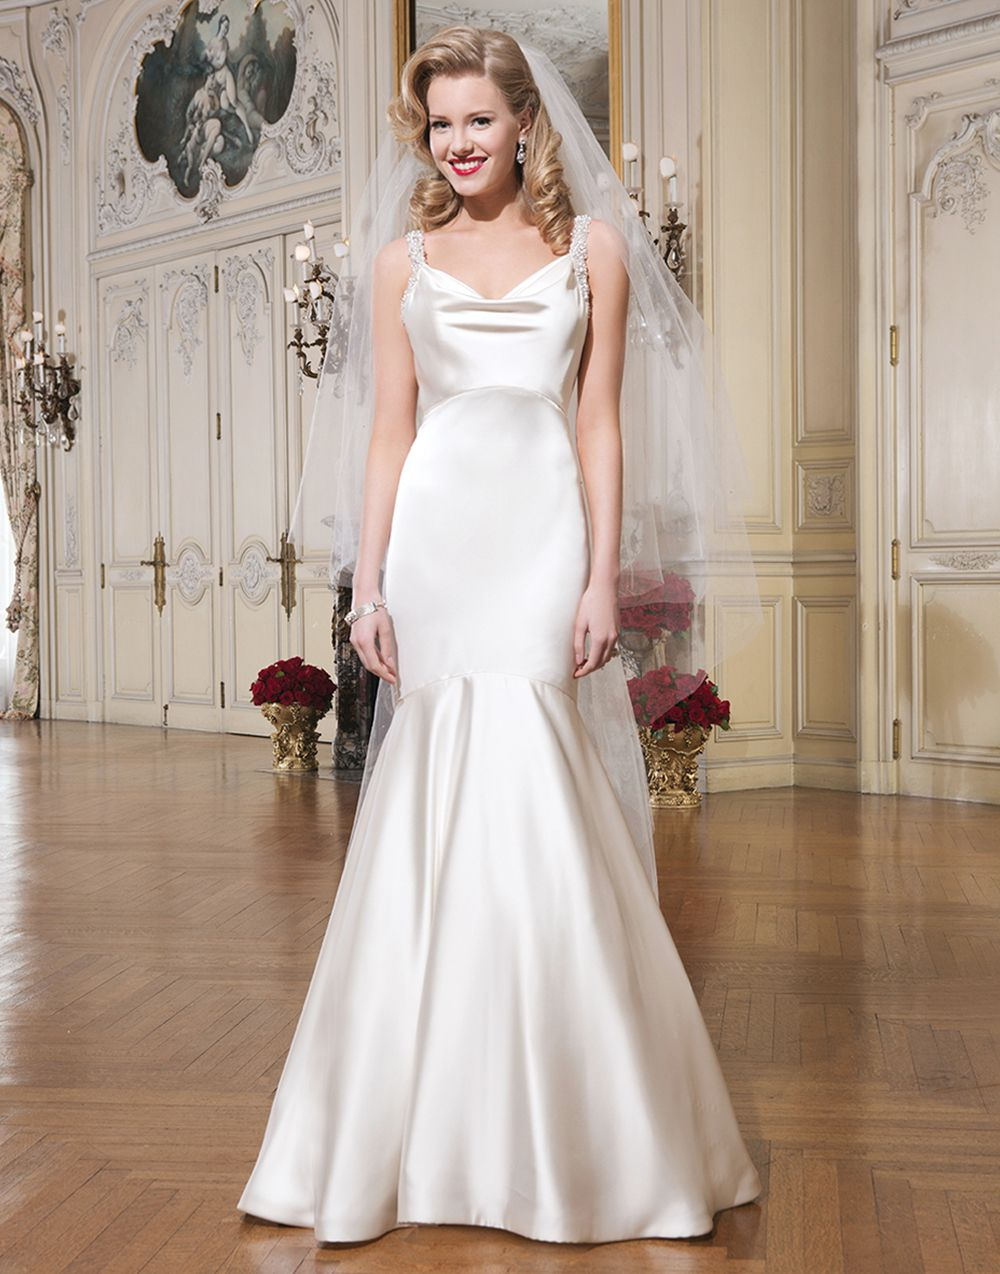 Justin alexander wedding dresses style 8756 luxe charmeuse mermaid old hollywood bridal style justin alexander wedding dresses style 8756 luxe charmeuse mermaid dress accentuated by a cowl neckline ombrellifo Gallery